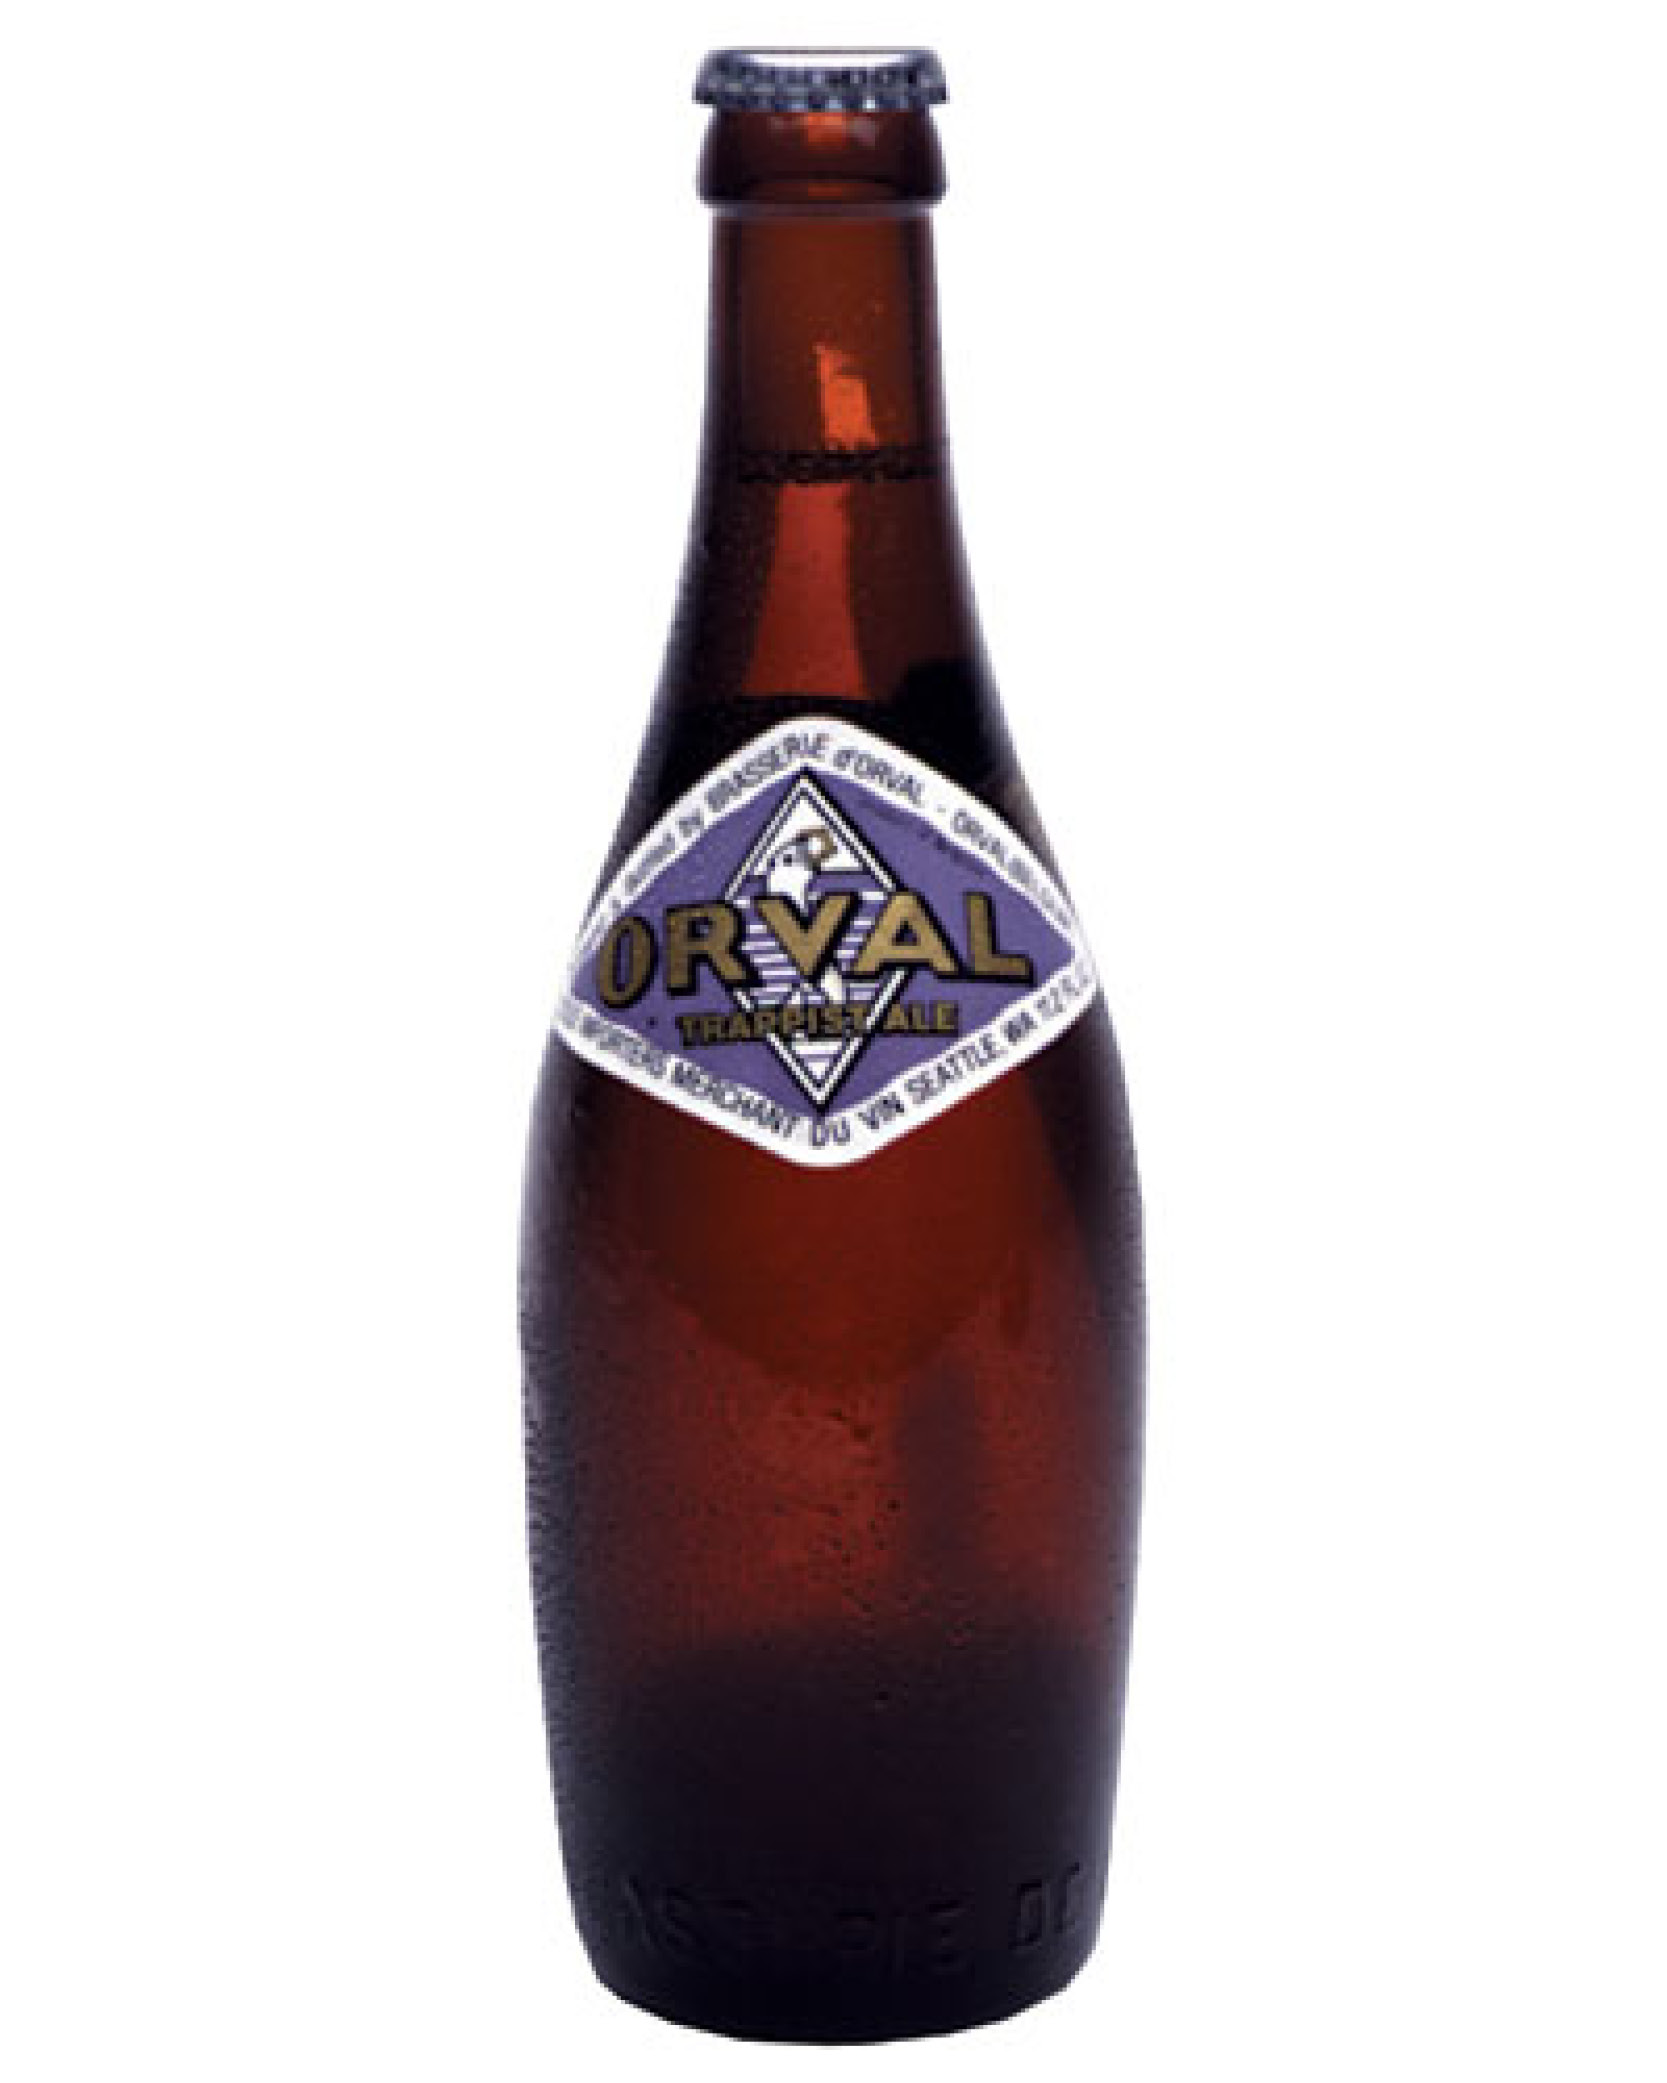 Orvall Trappist Ale